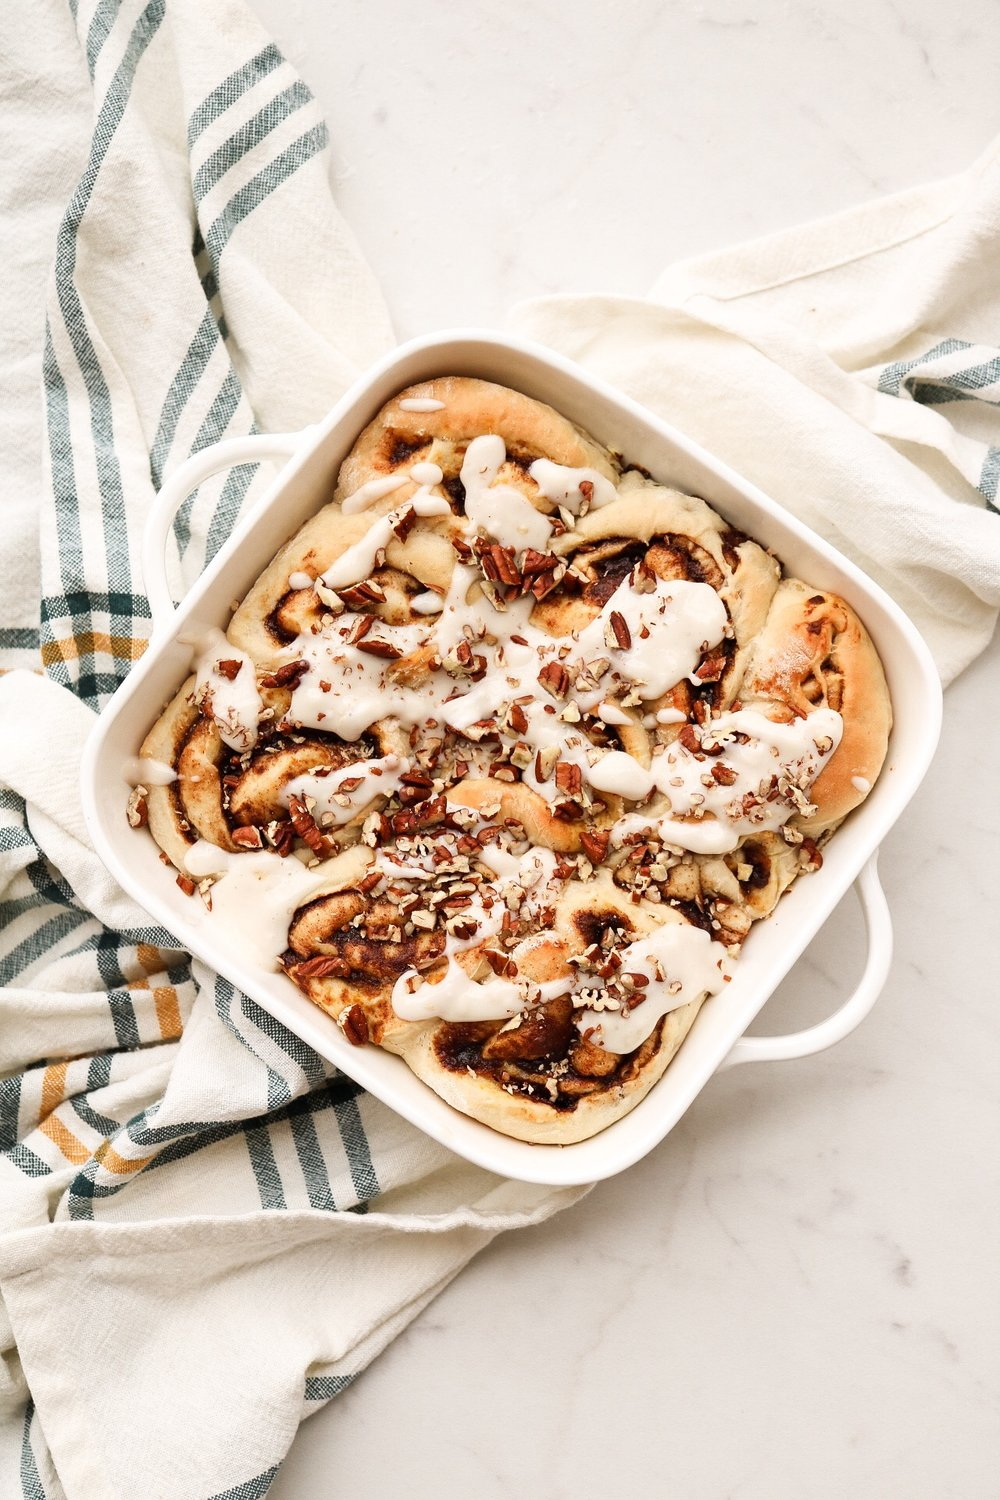 Pumpkin Cinnamon Rolls - INGREDIENTS:Dough:1 cup warm water2 packets instant dry yeast1/4 cup melted coconut oil2 Tbsp sugar1/2 tsp salt2 cups all purpose flourFilling:1/2 cup sugar4 Tbsp pumpkin puree1/2 Tbsp cinnamon1/4 tsp nutmegINSTRUCTIONS:In a large bowl, mix together the warm water and the yeast. Allow this mixture to sit for about 5 minutes, so that the yeast has a chance to activate. Once some bubbles has formed, add in the oil, sugar, salt, and flour. Mix this all together, until a dough has formed. Flour your counter or surface, and roll out your dough. Roll it into a rectangular size, and about a 1/2 inch thick - not too thin, and not too thick! Over the top, spread our your pumpkin puree in an even layer. In a small bowl, combine the sugar, cinnamon, and nutmeg, and then sprinkle this all over the pumpkin puree. Then, just roll up the dough into a log, and slice it into even slices. Place your cinnamon roll wheels into an 8x8 baking pan, and allow the rolls to rise in a warm place for about half an hour. In the meantime, preheat your oven to 350F, and once the rolls have risen, allow them to bake for 25-30 minutes, until slightly golden brown on top.